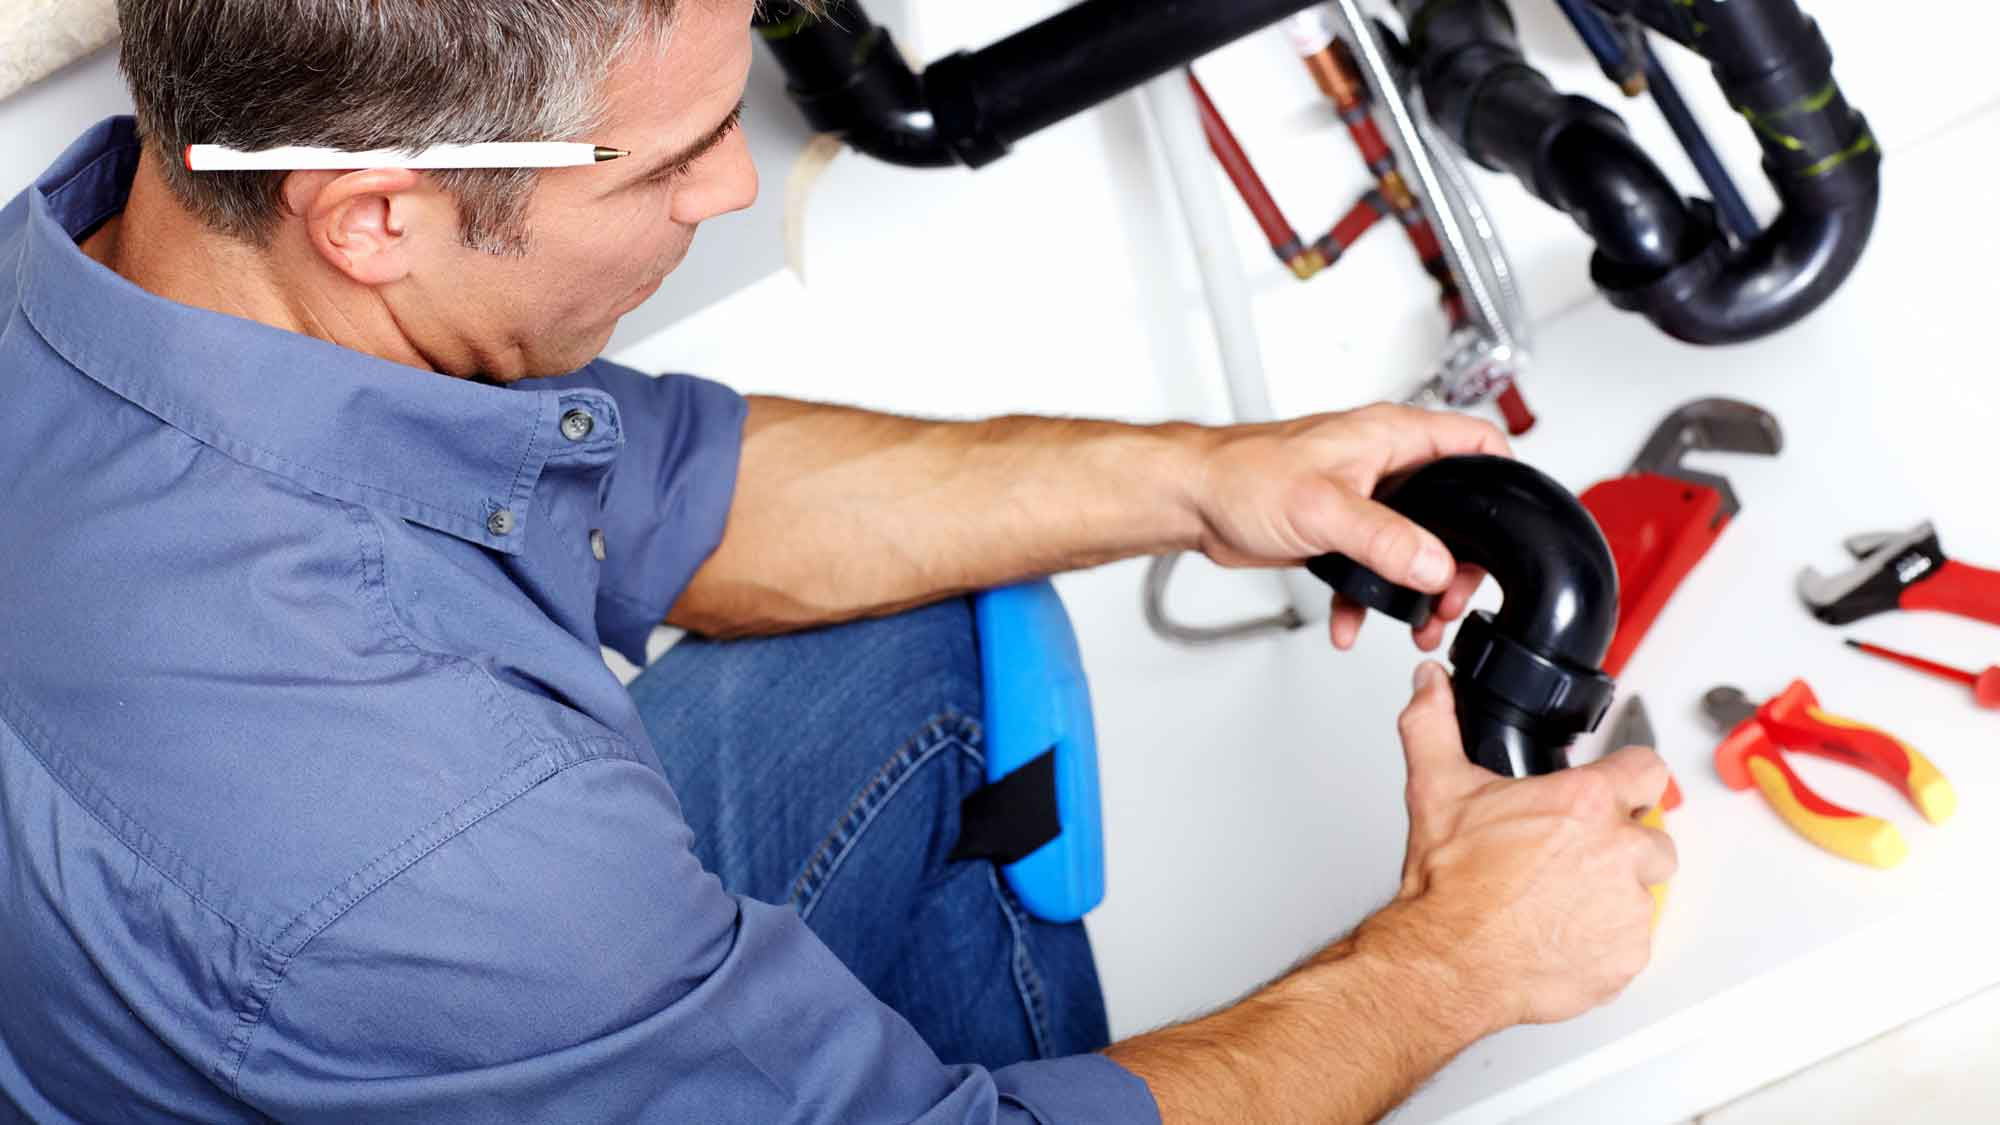 plumbing and heating services essex maintenance leigh-on-sea supplies